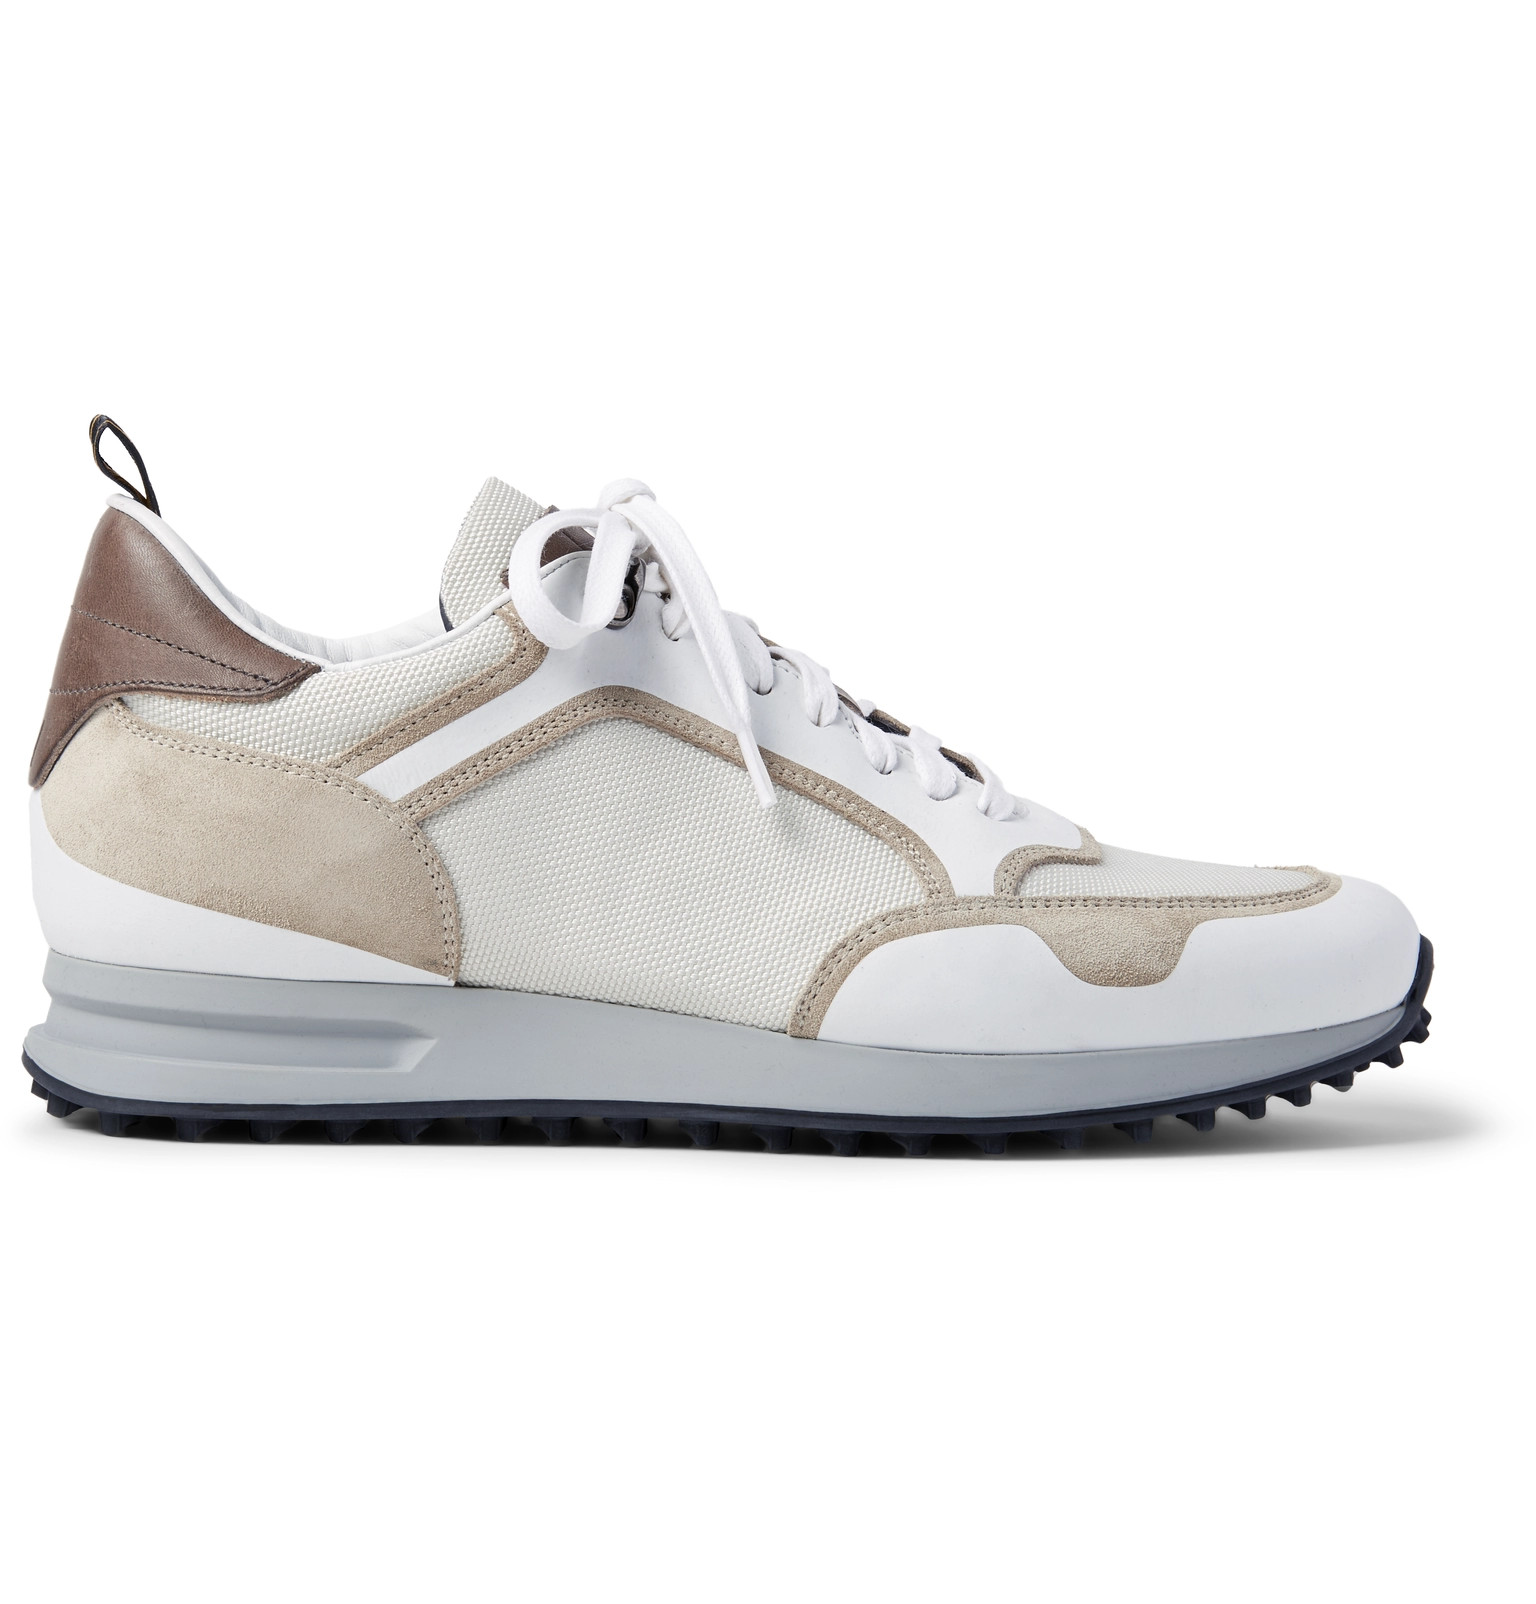 Mesh Sneakers and Radial Runner Suede Leather Trimmed Dunhill RY4w0R